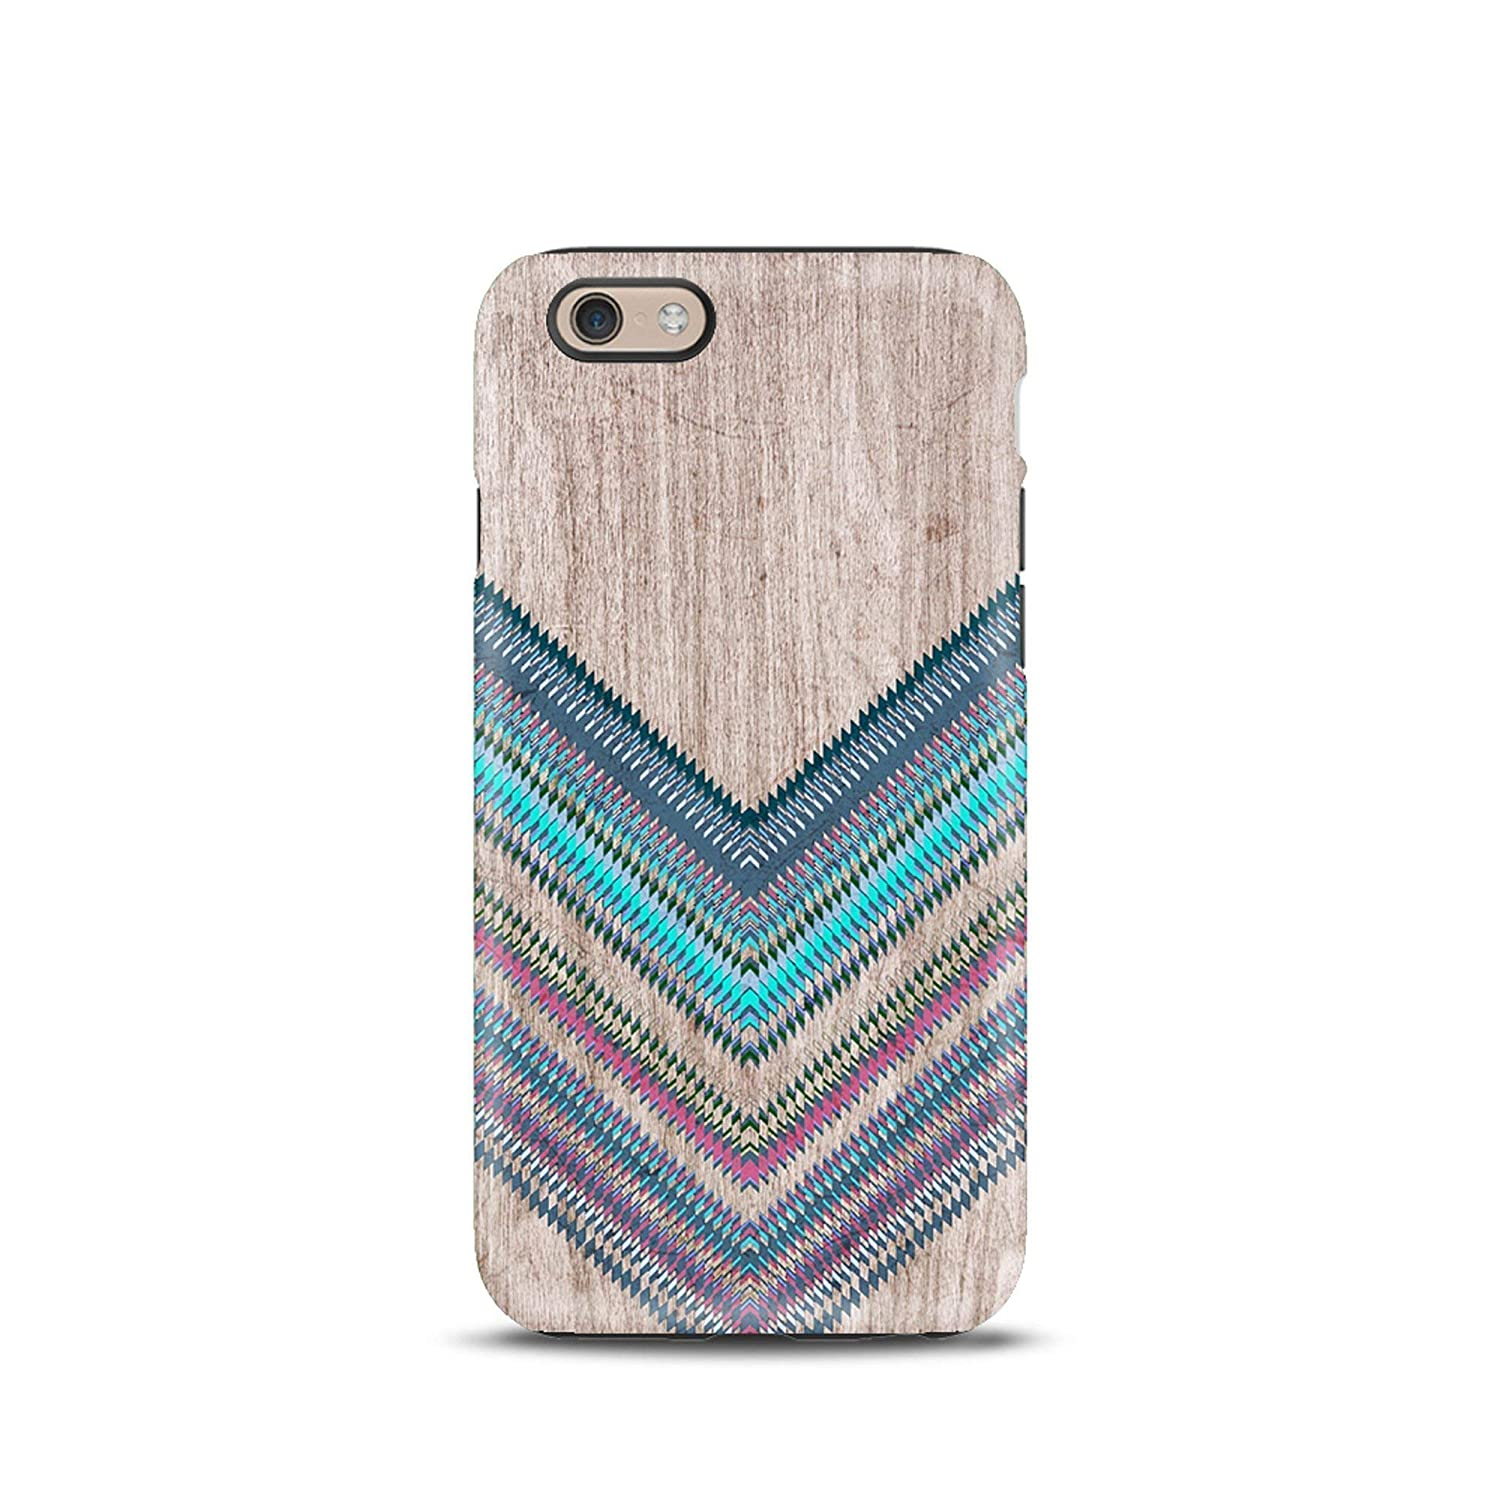 Tribale Legno cover case custodia per iPhone 5, 5s, 6, 6s, 7, 7 plus, 8, 8 plus, X, XS, per Galaxy S6, S7, S8